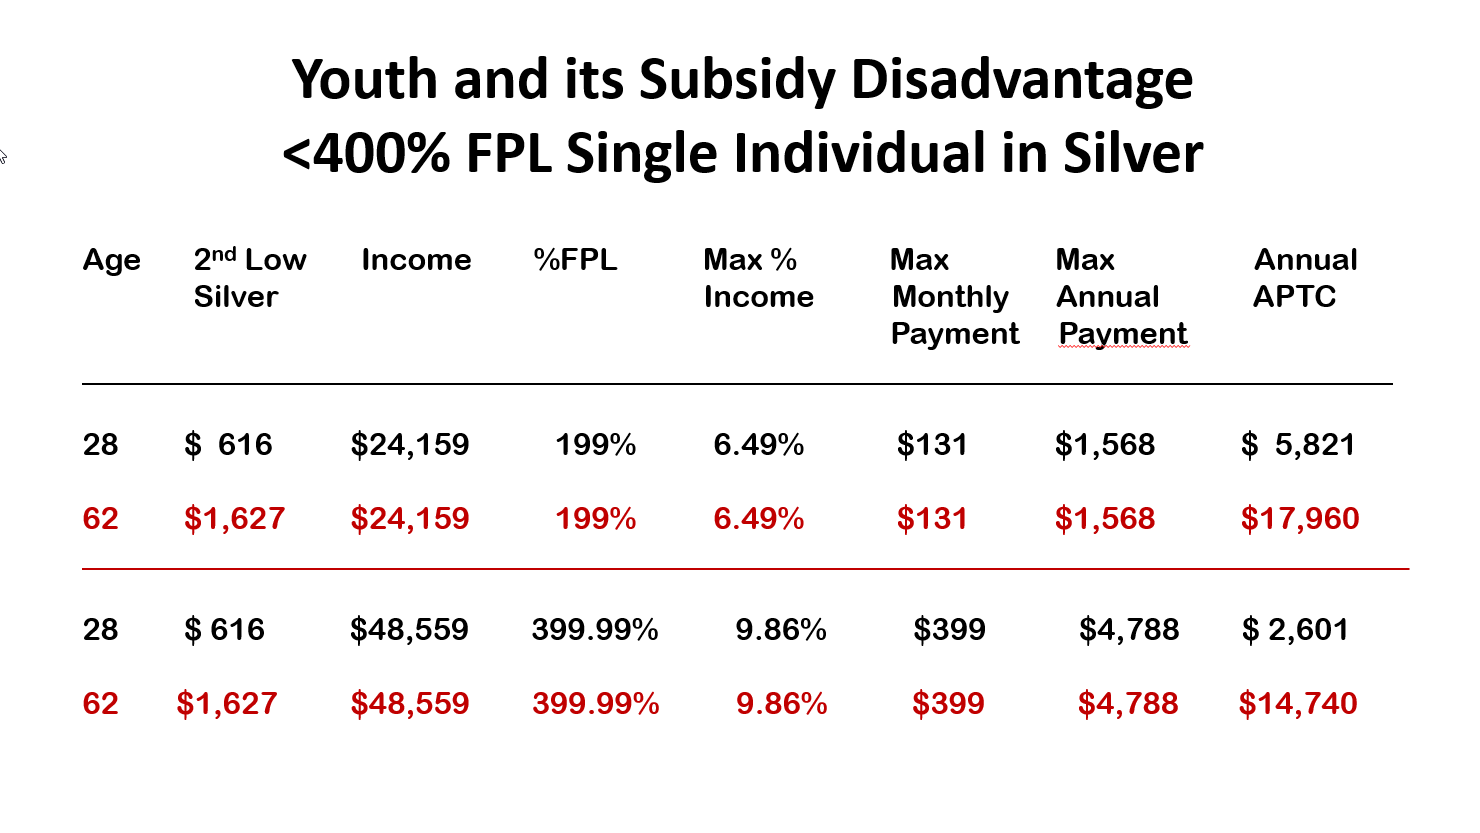 Youth and Subsidy Disadvantage Single